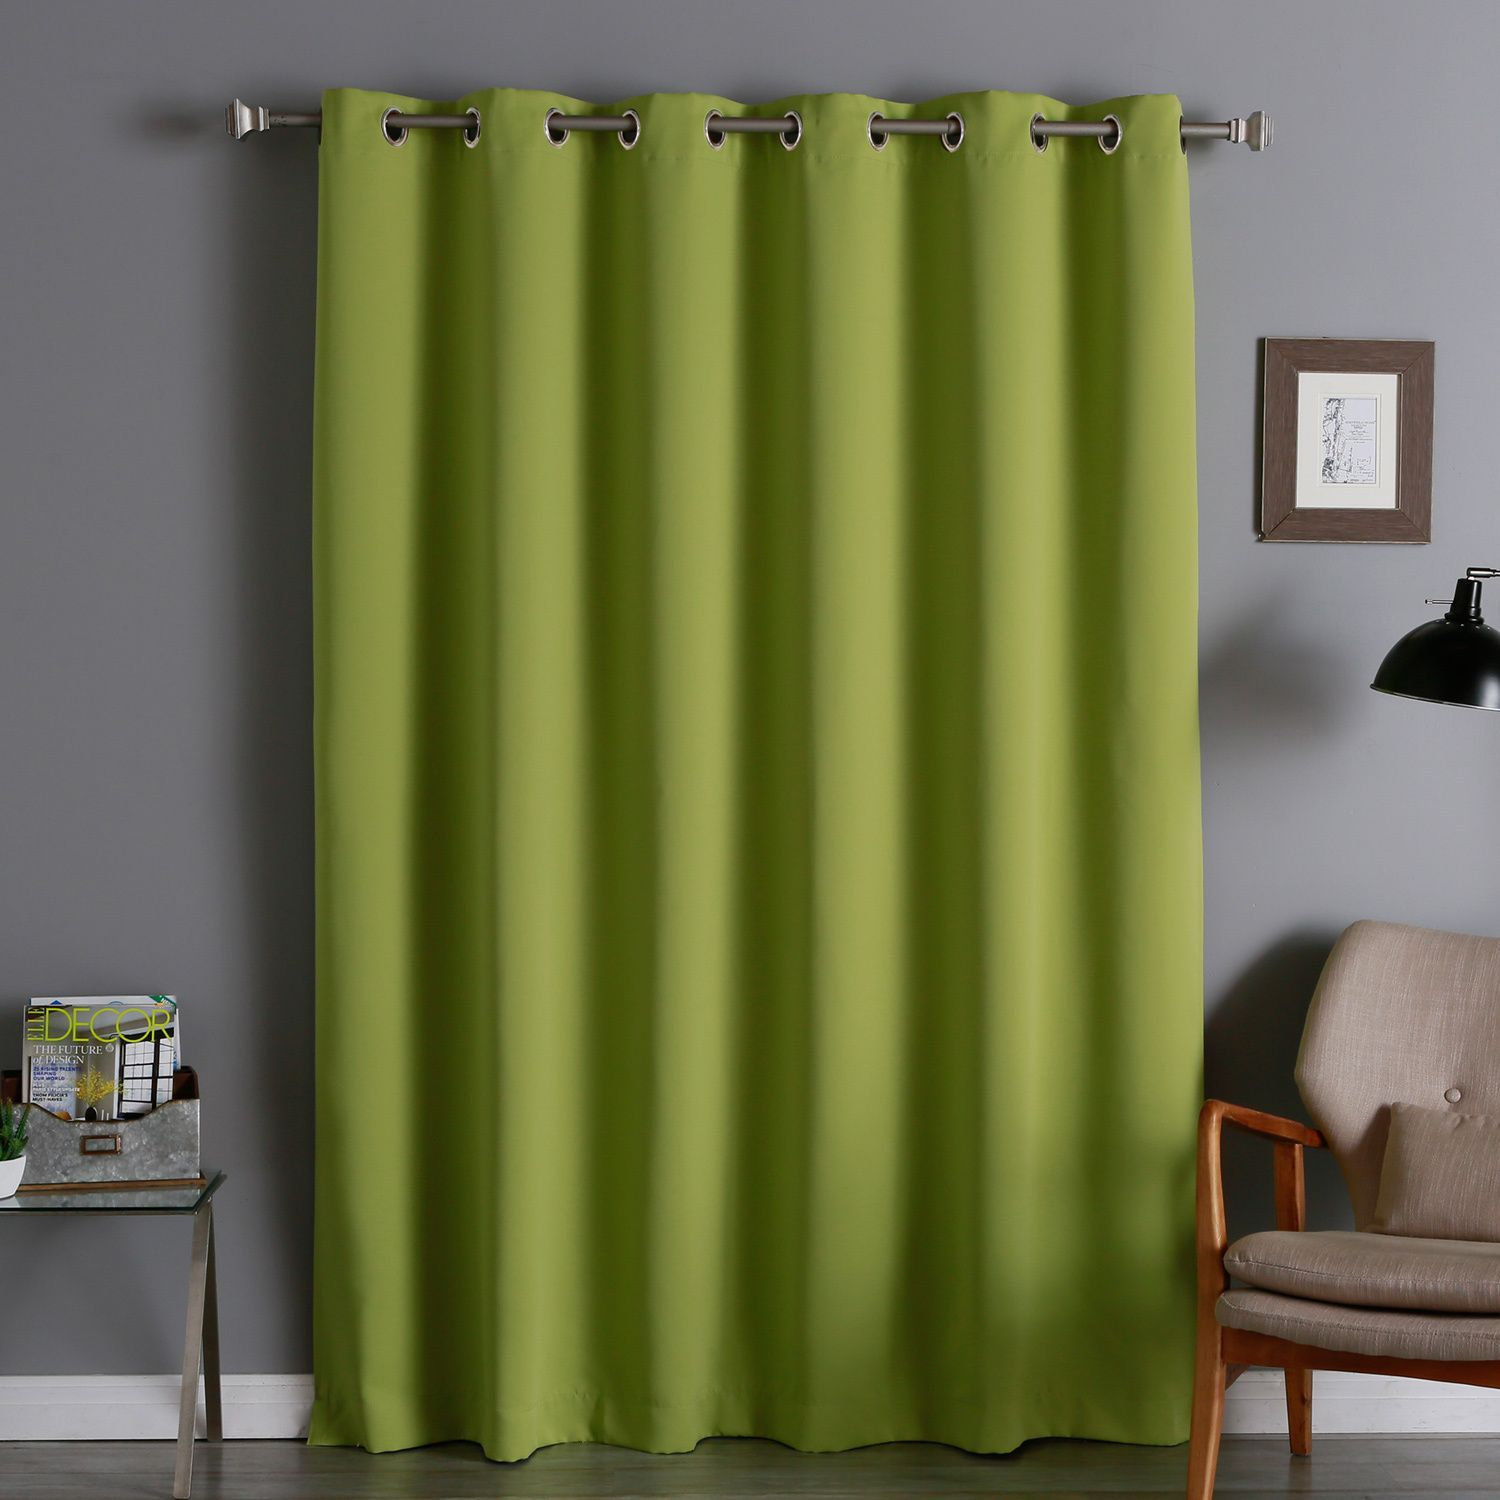 Aurora Home Extra Wide Thermal Insulated 84 Inch Blackout Curtain Panel Avocado Green Size 80 X Polyester Solid